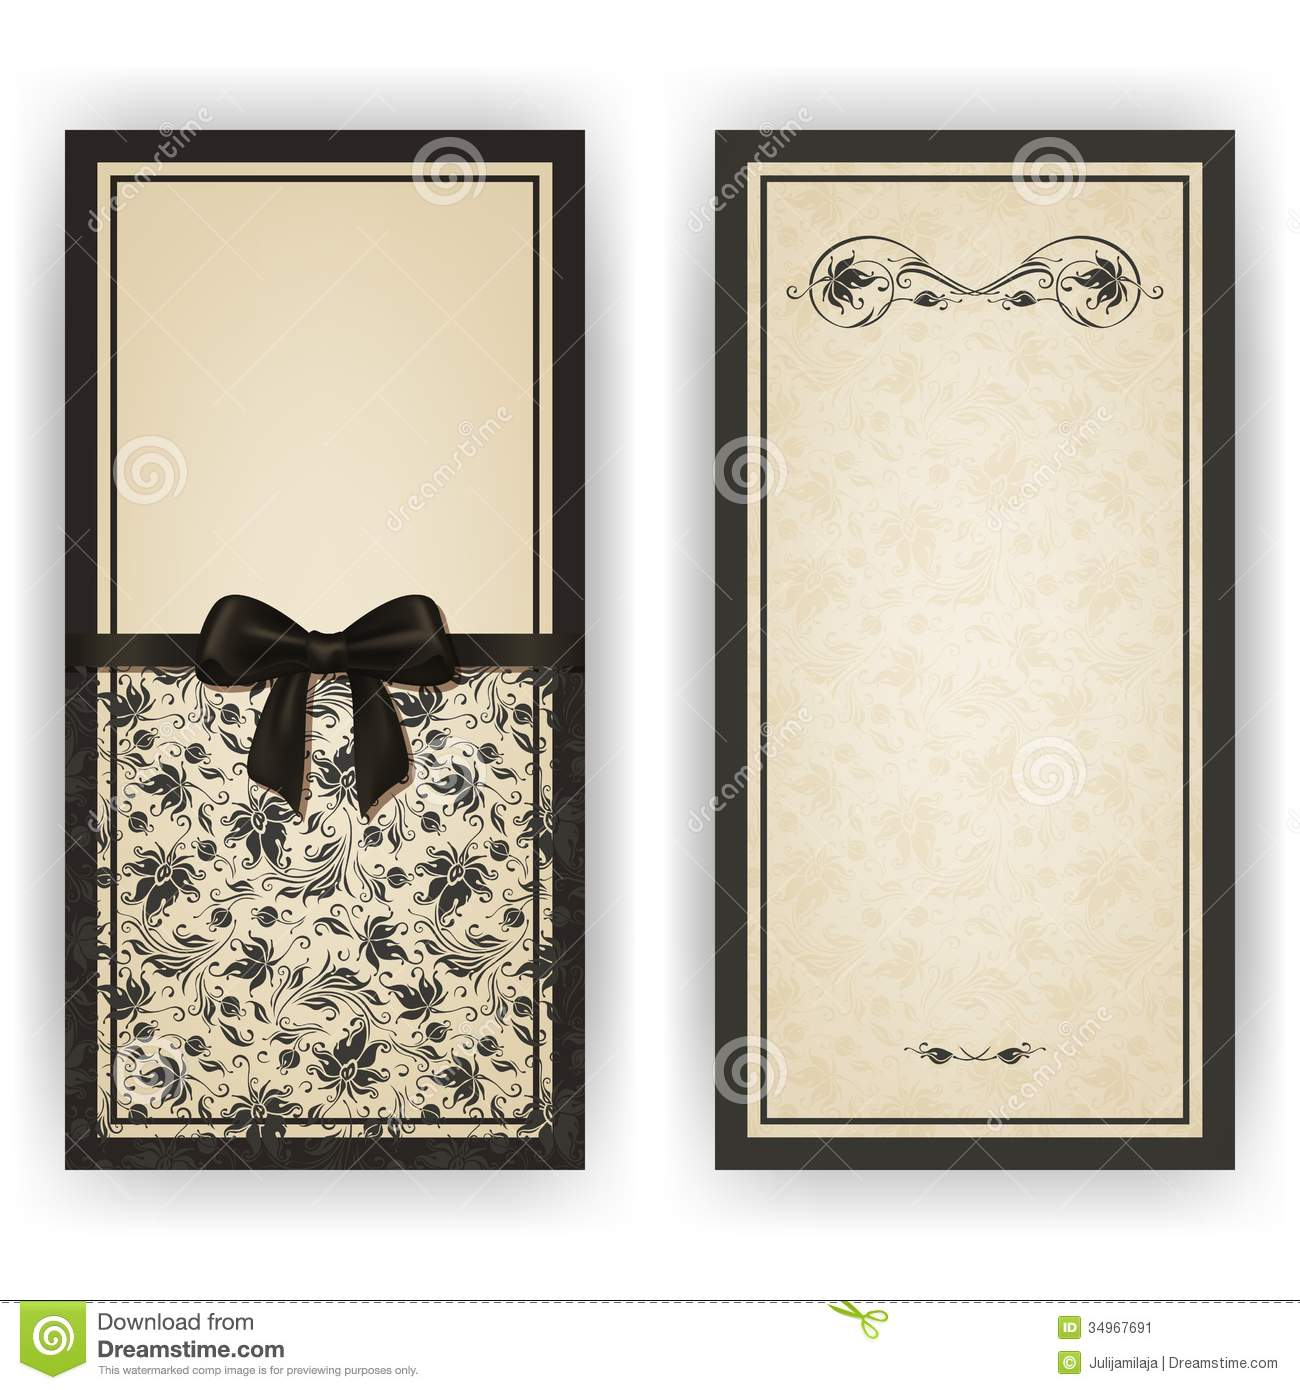 Elegant Vector Template For Luxury Invitation, Stock Image - Image ...